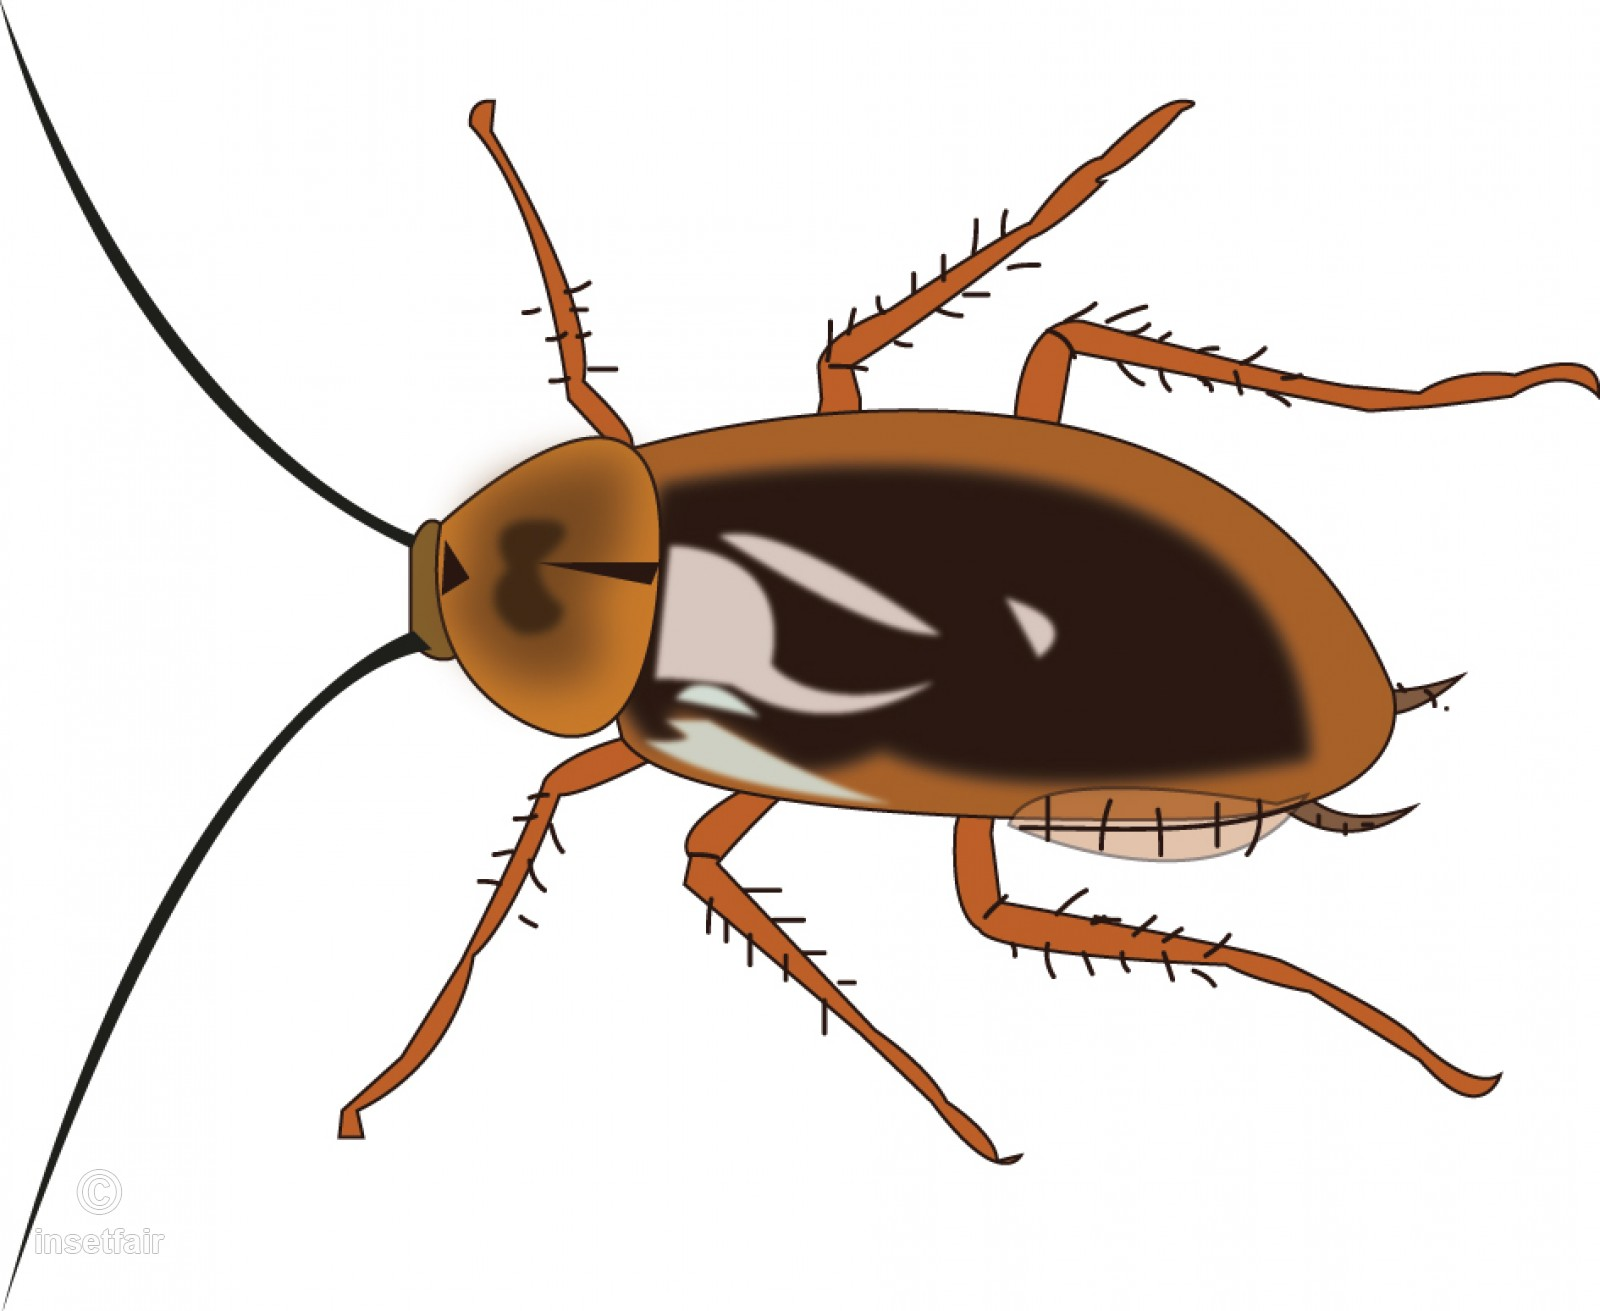 Cockroach insect vector illustration for free download.